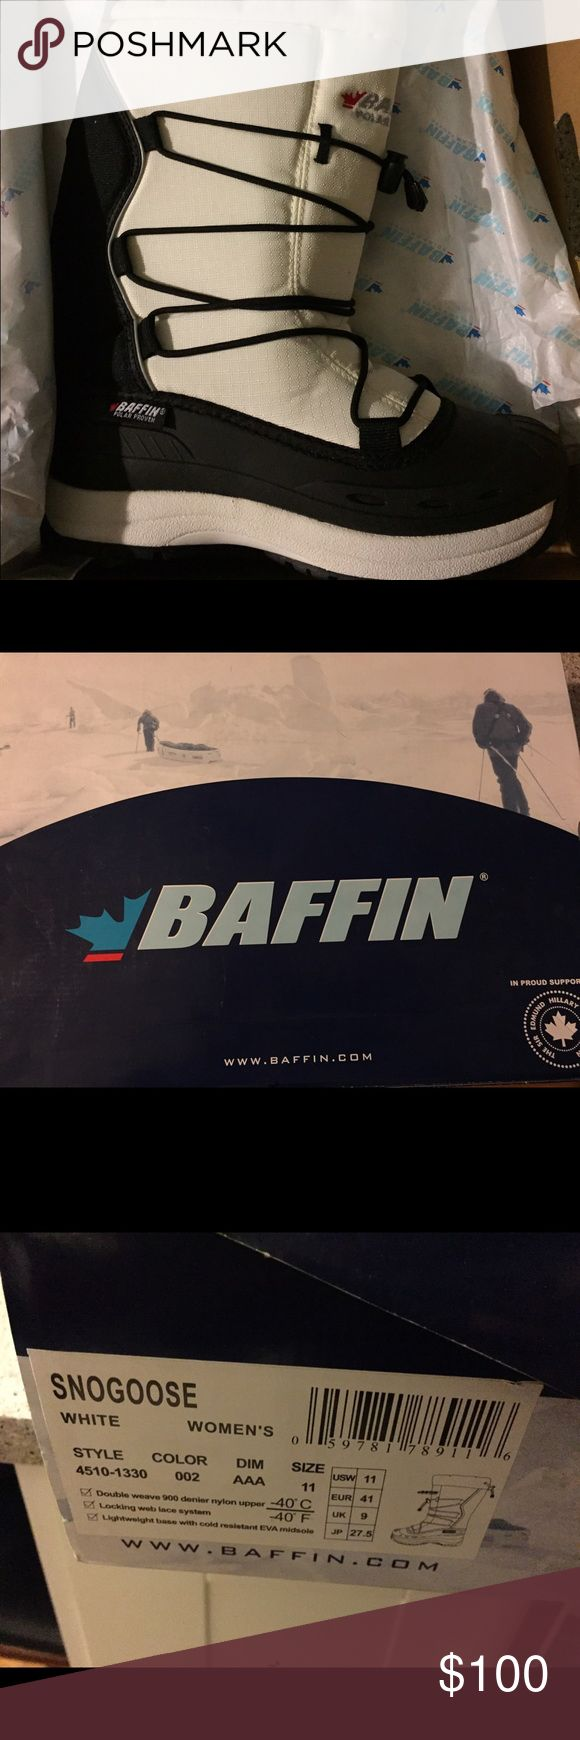 Baffin Snowboarding boots Baffin Snogoose Women's Snowboarding boots.  Size 11.  Brand new, with tags.  Never worn.  Paid $139.95 for same.  Asking $100 OBO. Baffin Shoes Winter & Rain Boots